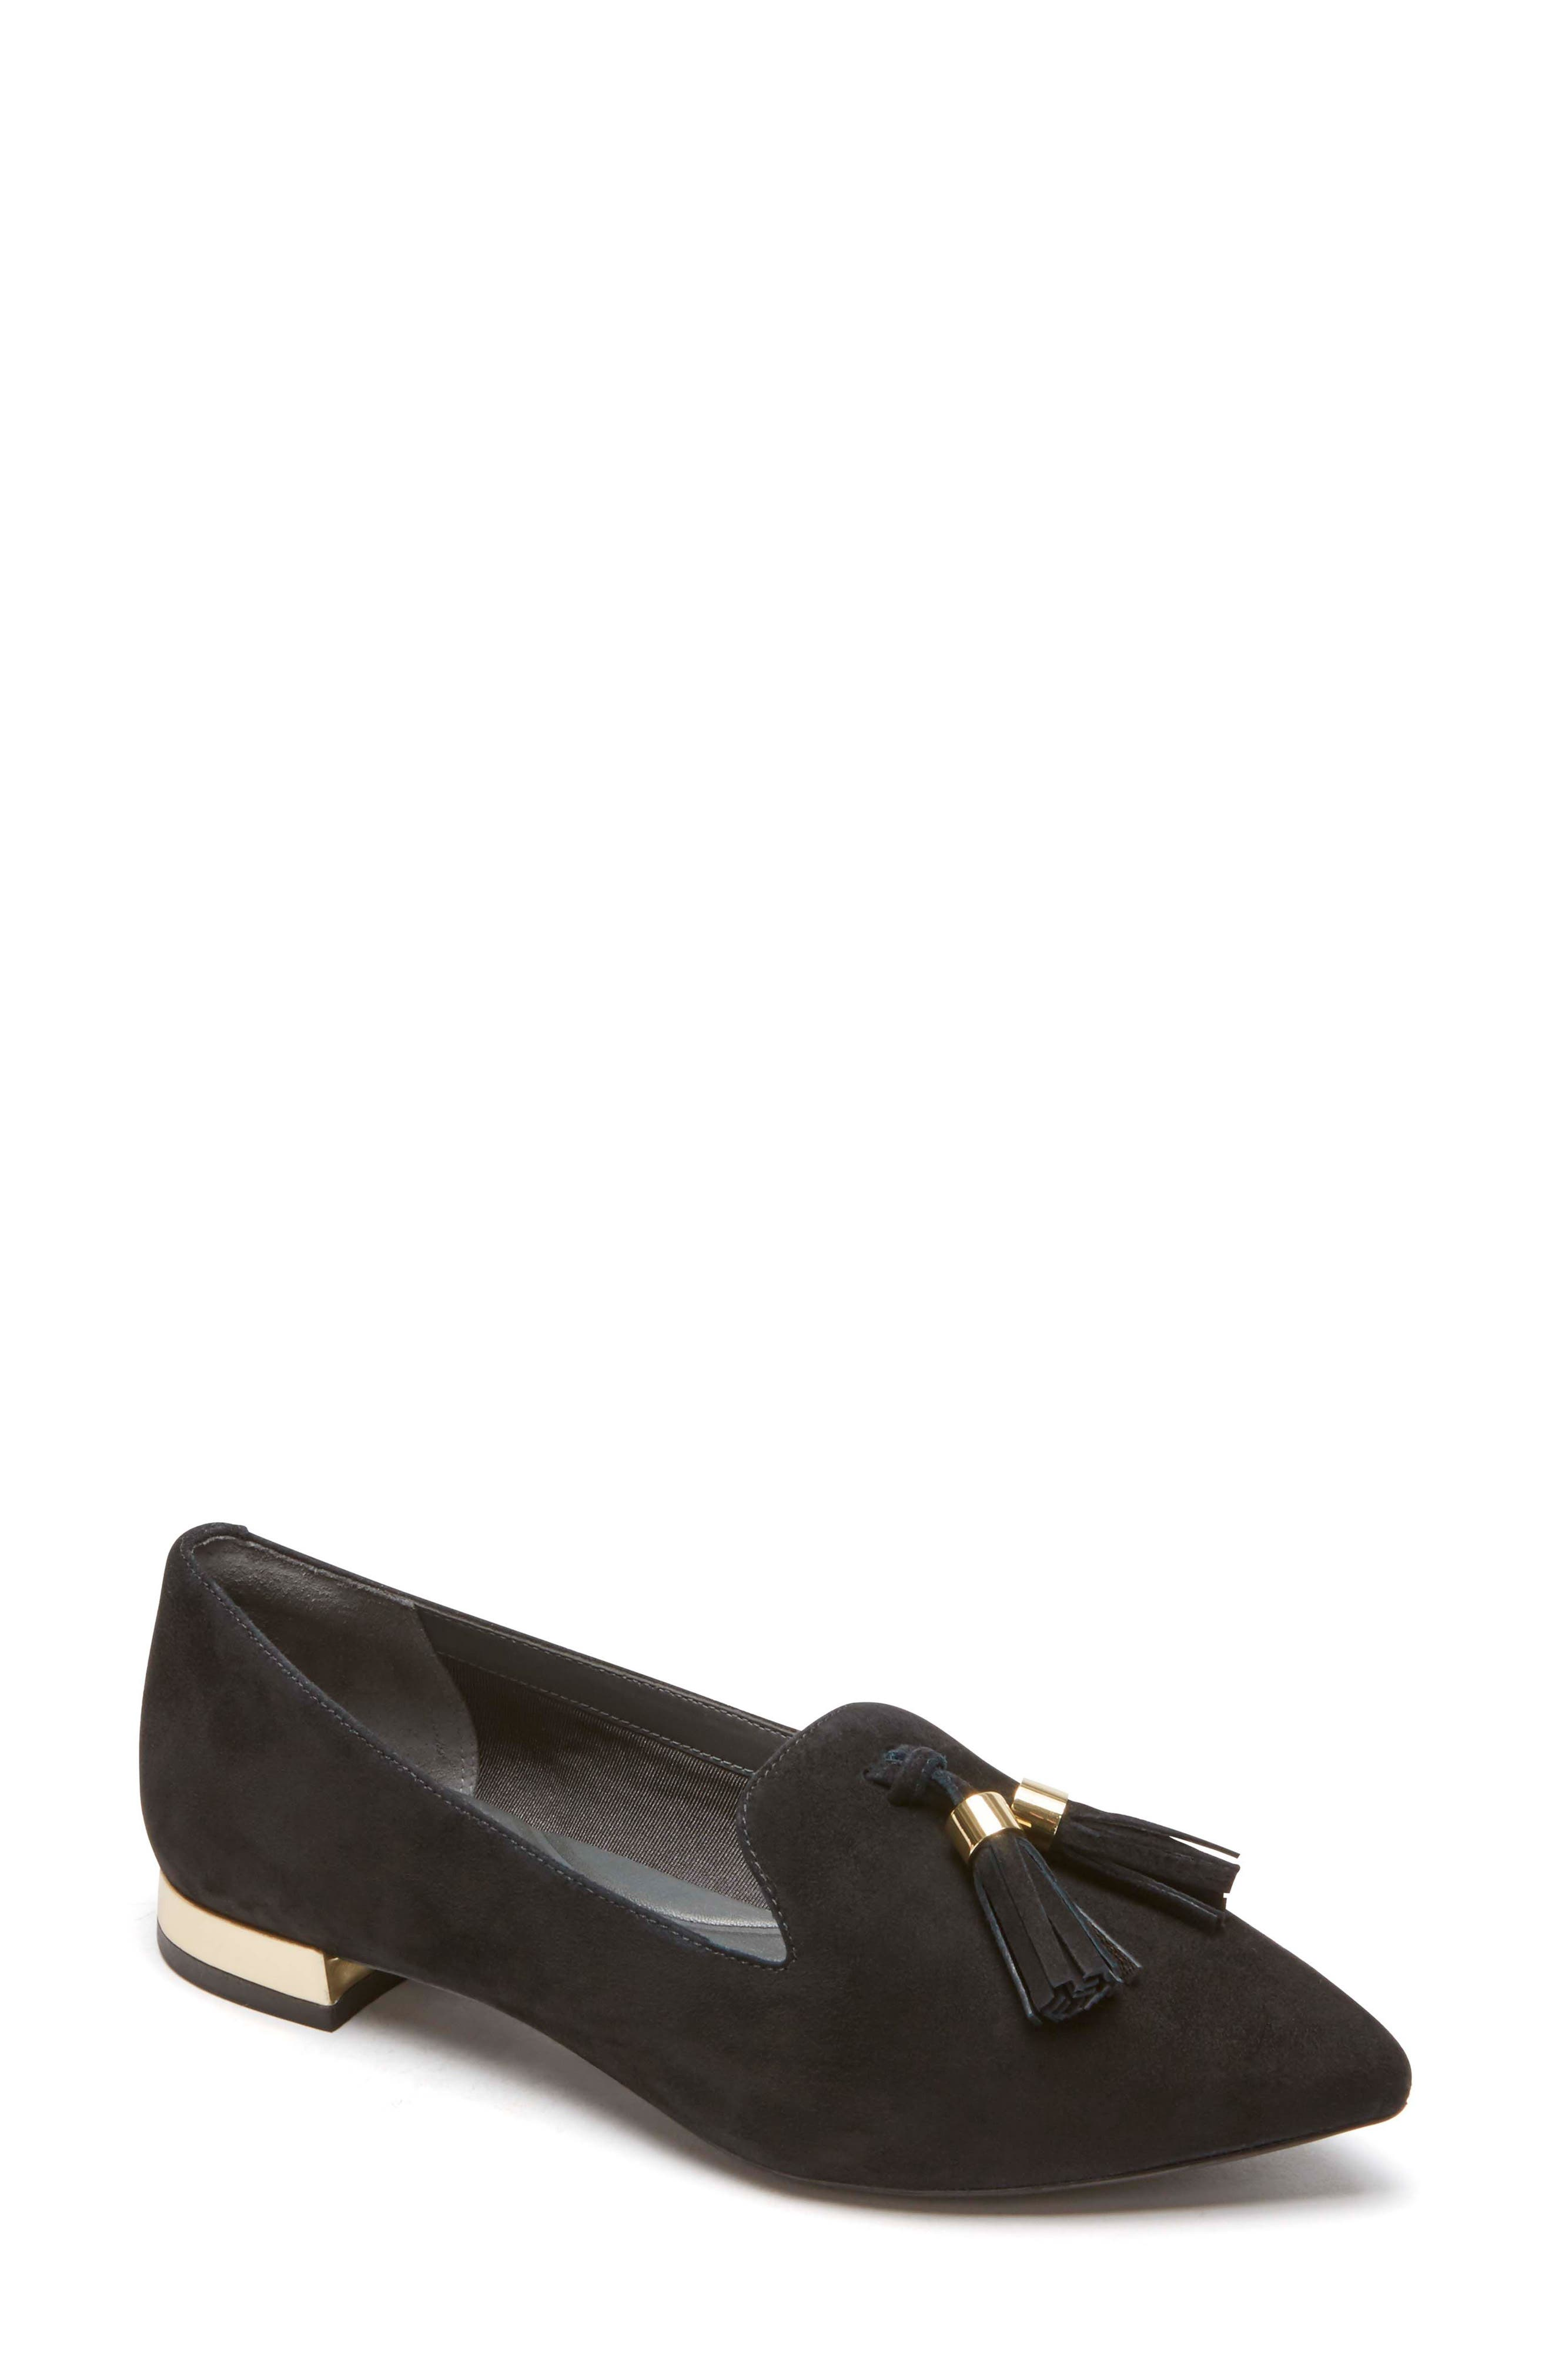 ROCKPORT Total Motion Zuly Luxe Pointy Toe Loafer, Main, color, BLACK SUEDE